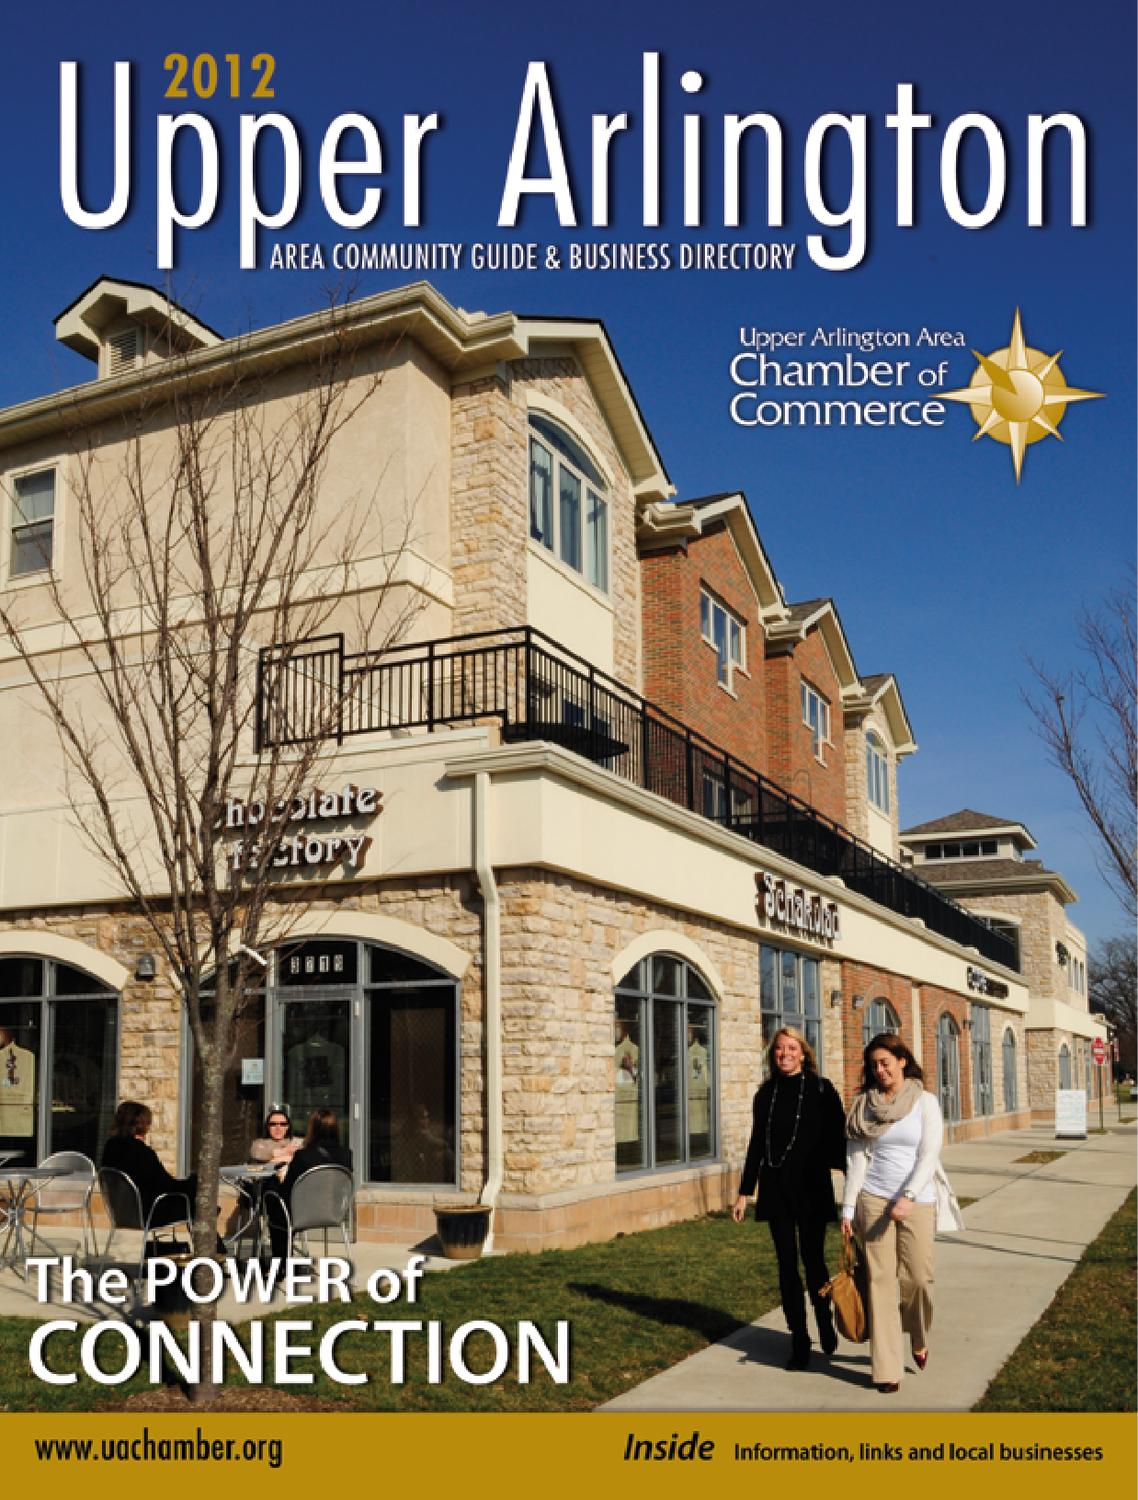 arlington tx membership directory and community profile by uaac community guide business directory